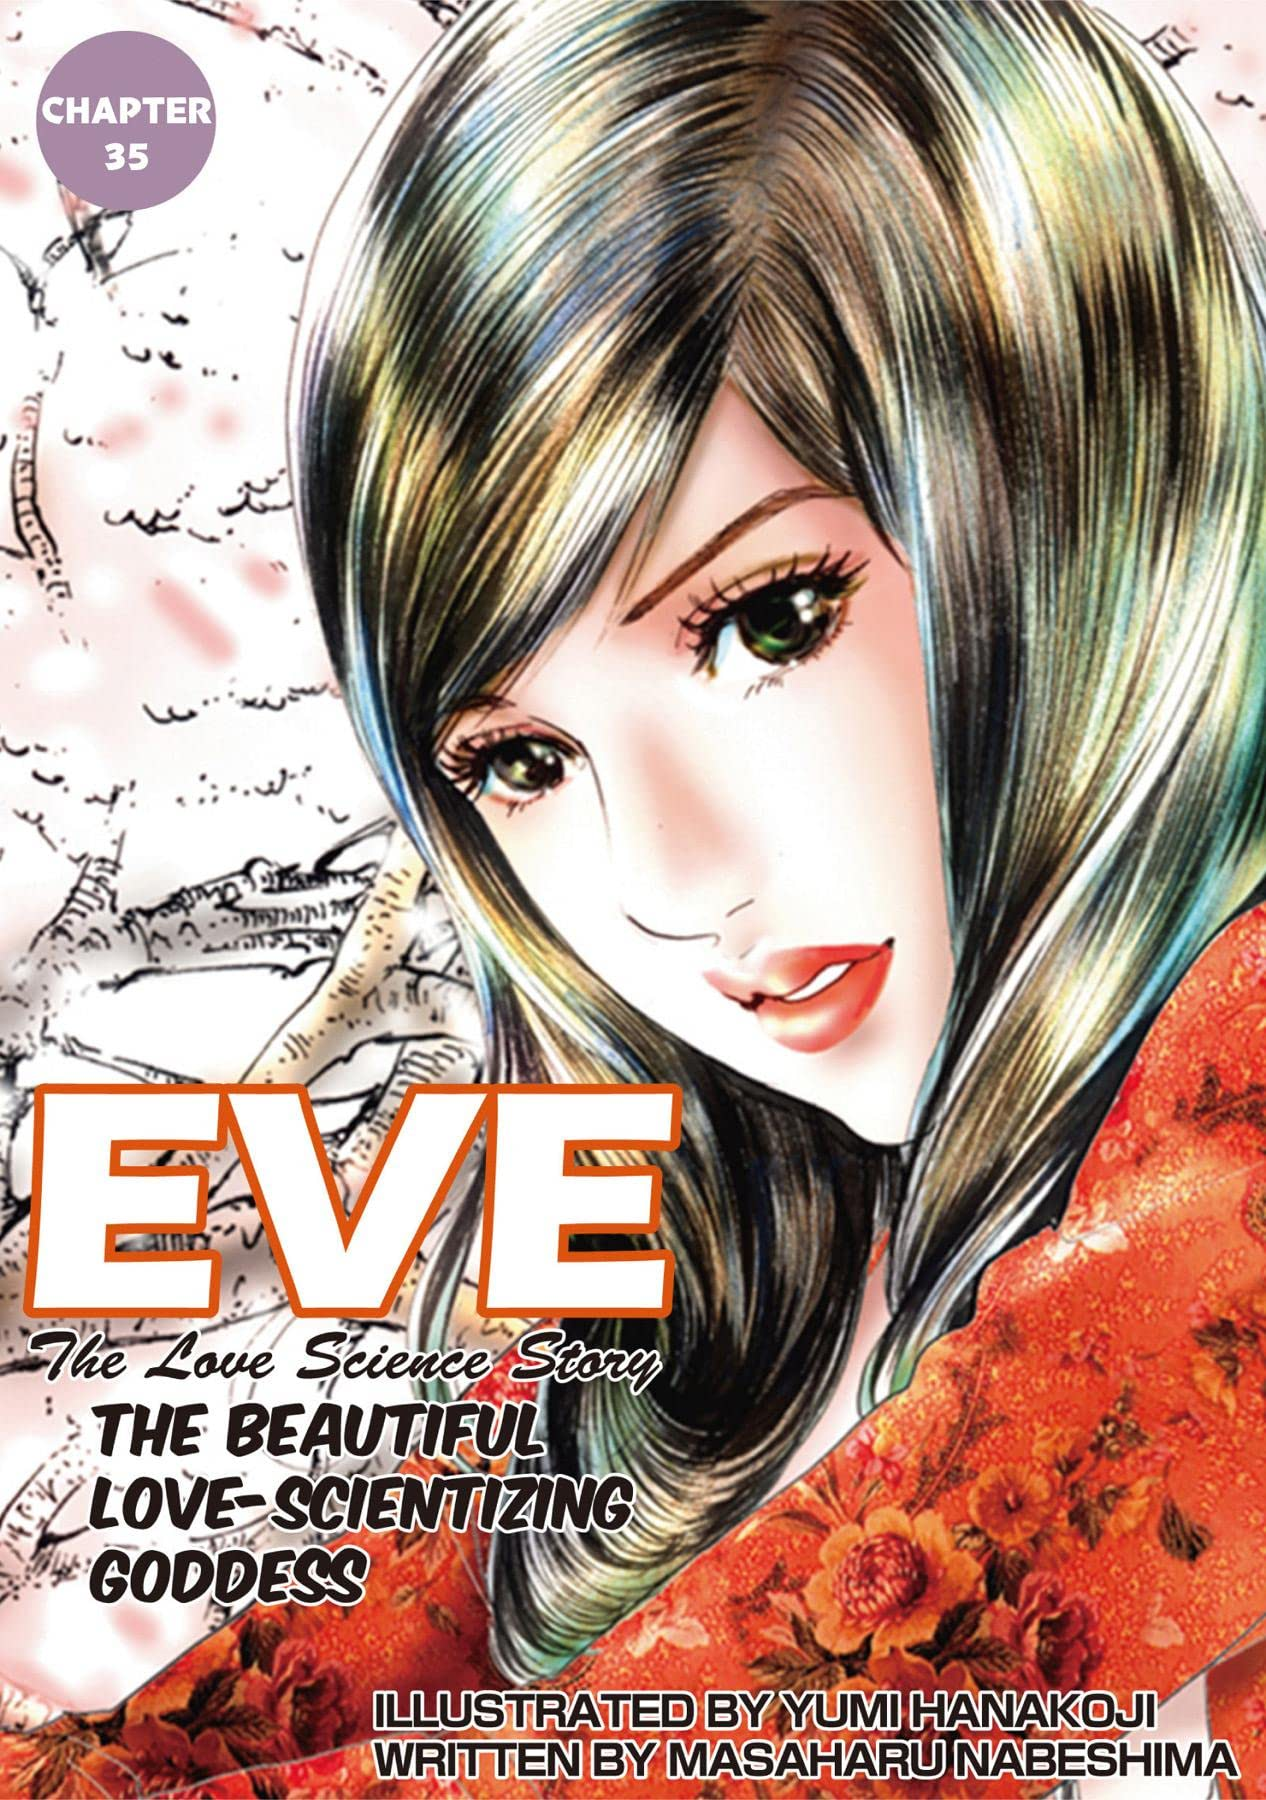 EVE:THE BEAUTIFUL LOVE-SCIENTIZING GODDESS #35